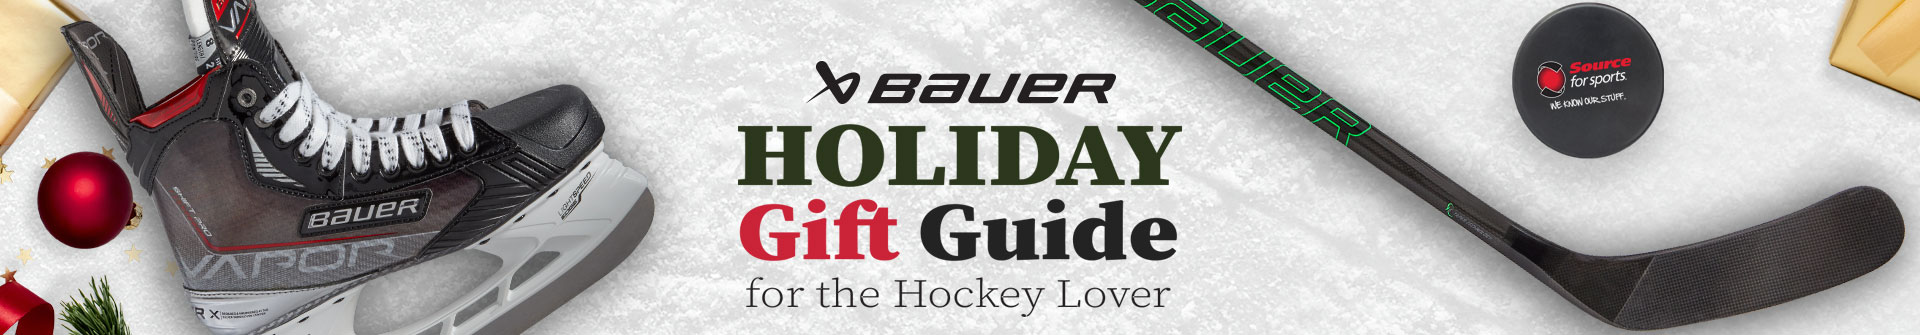 Shop Bauer Hockey Gift Ideas At Source For Sports Hockey Stores Near You.